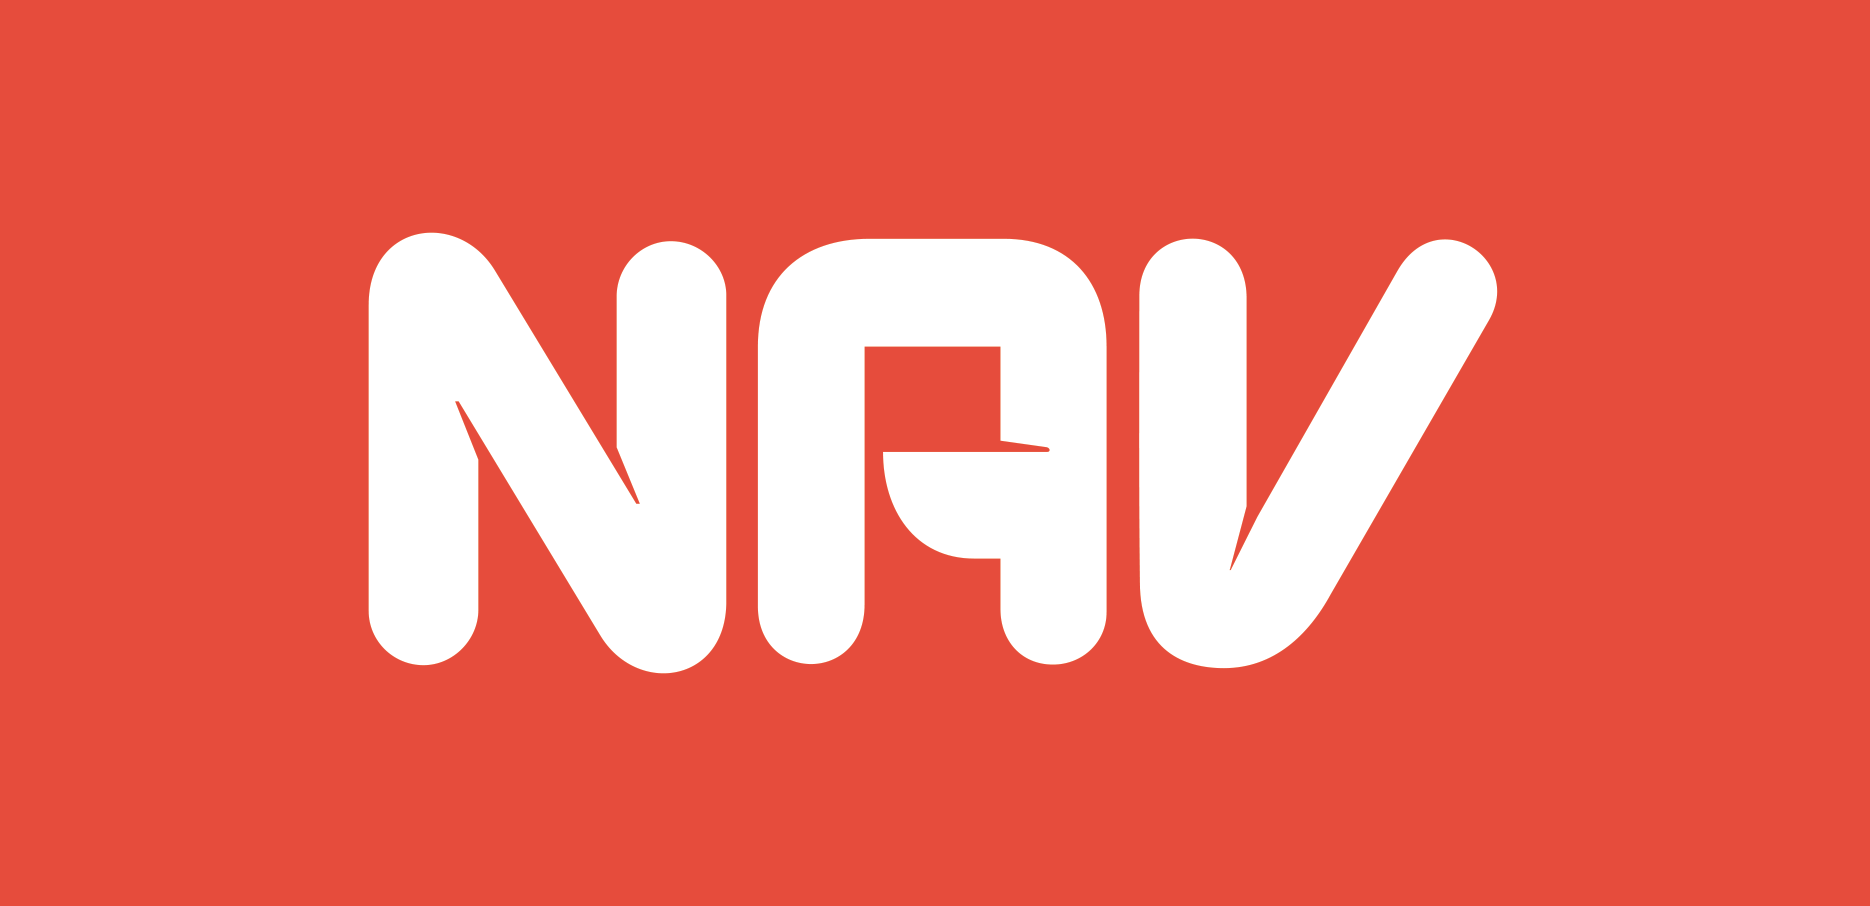 NAV is a boutique web design studio I own and operate.